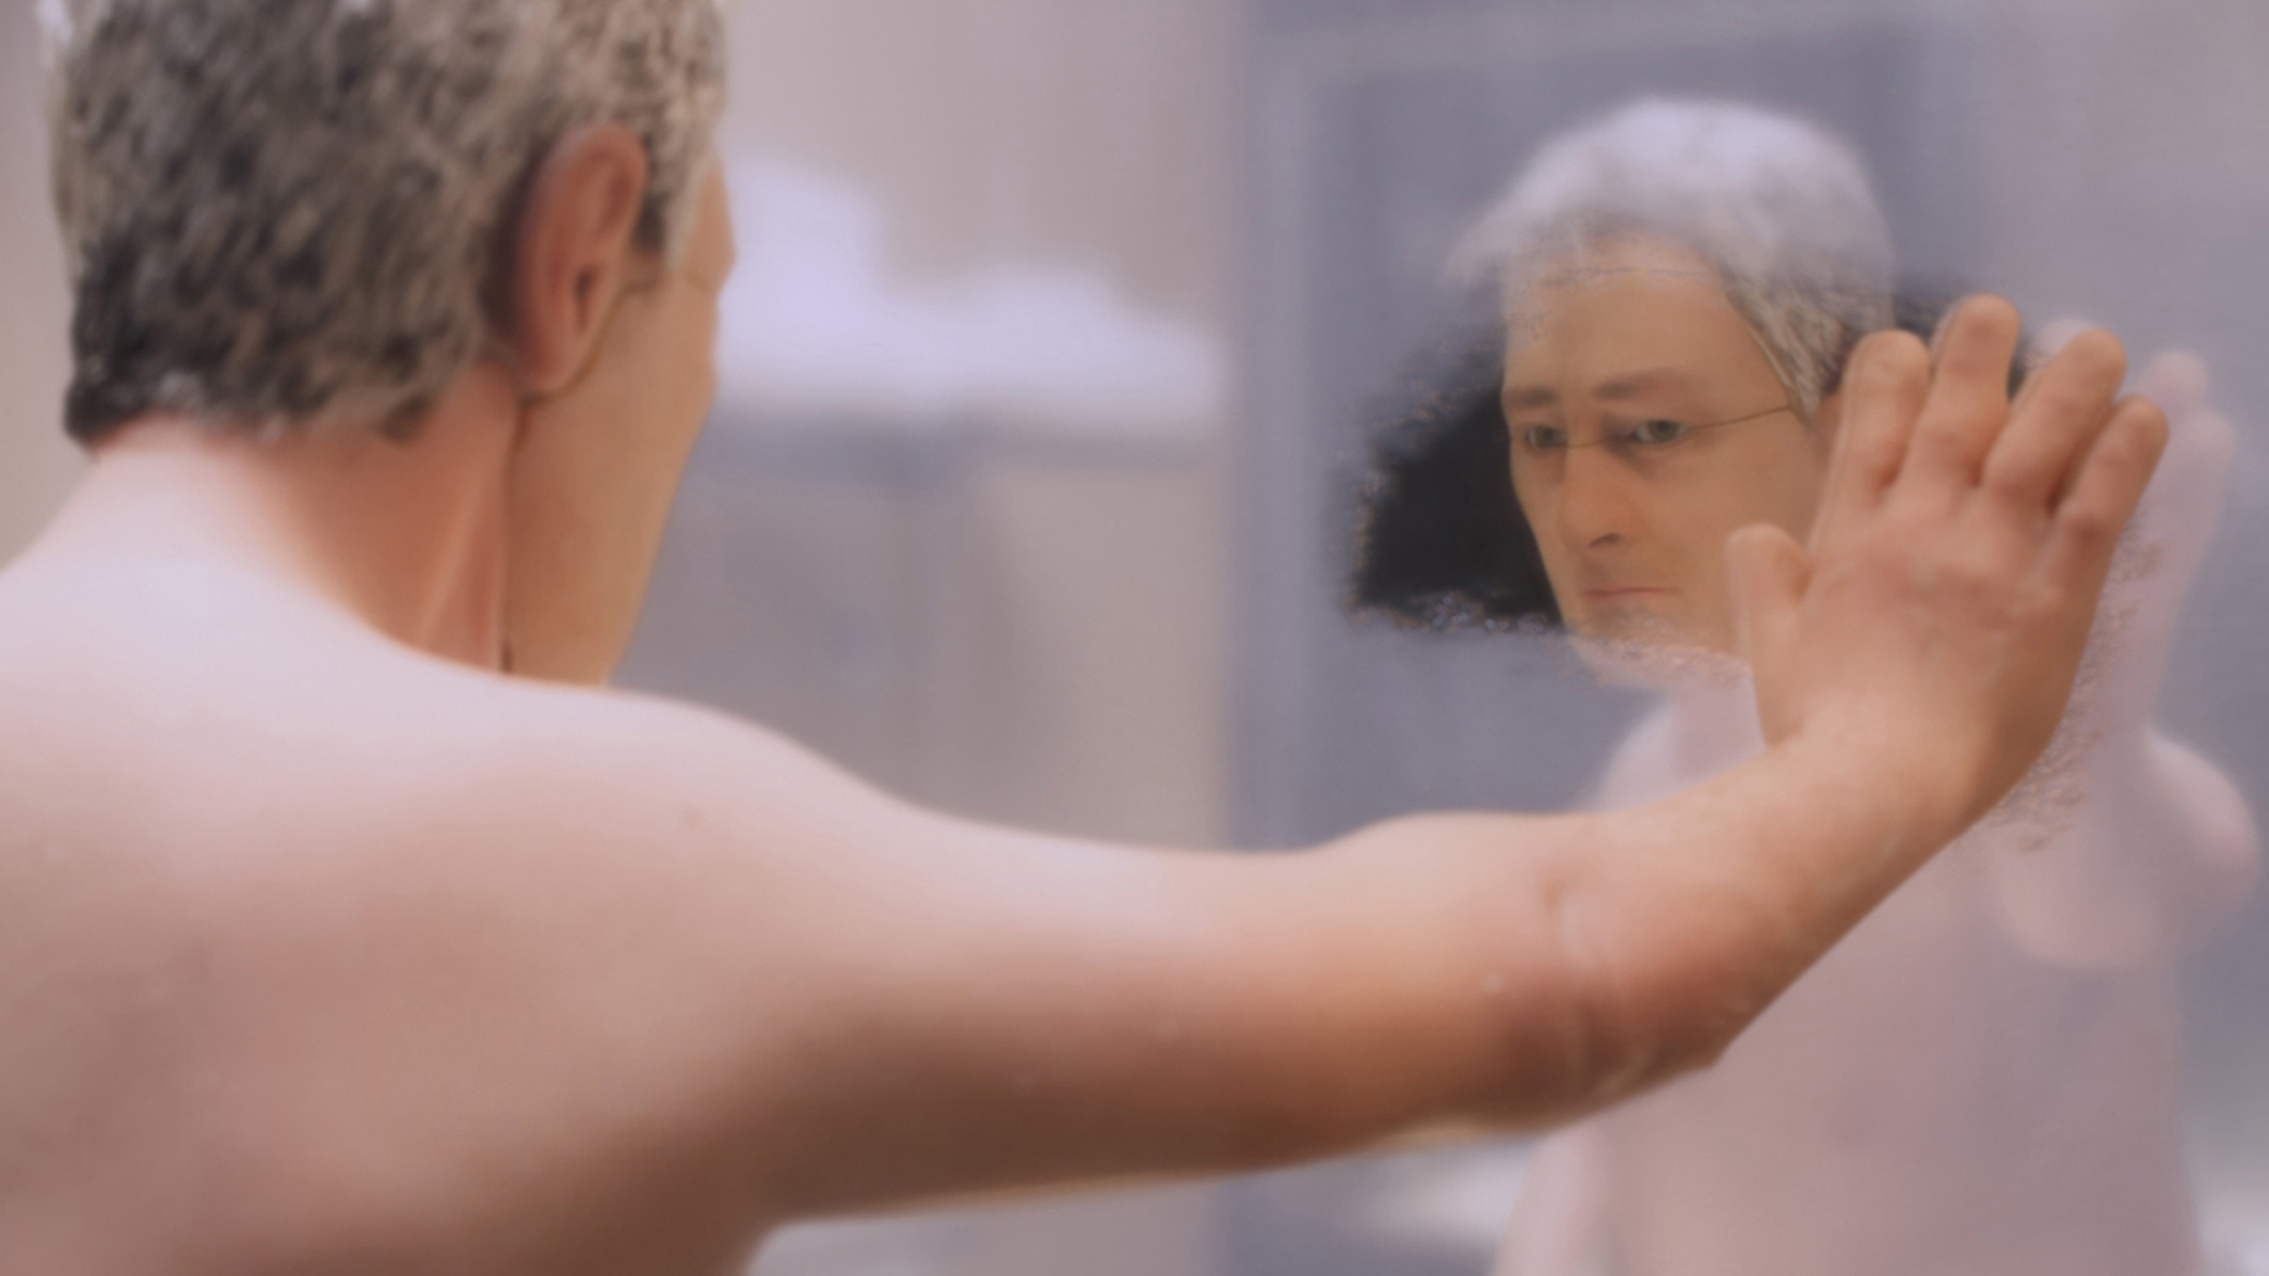 anomalisa is a charlie kaufman movie featuring puppets yes its weird